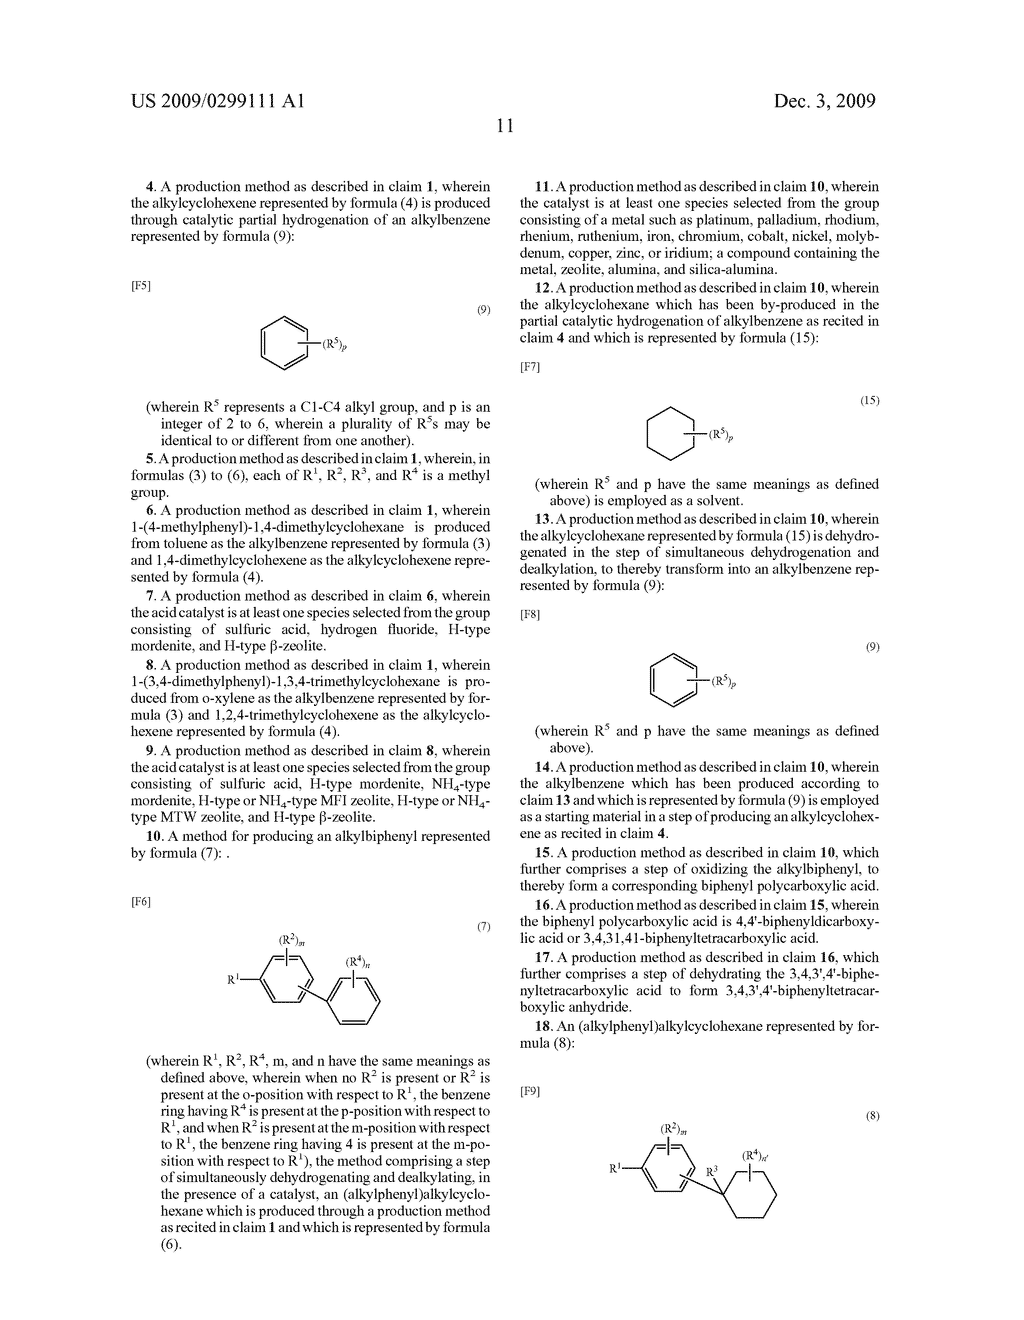 (ALKYLPHENYL) ALKYLCYCLOHEXANE AND METHOD FOR PRODUCING (ALKYLPHENYL) ALKYLCYCLOHEXANE OR ALKYLBIPHENYL - diagram, schematic, and image 13